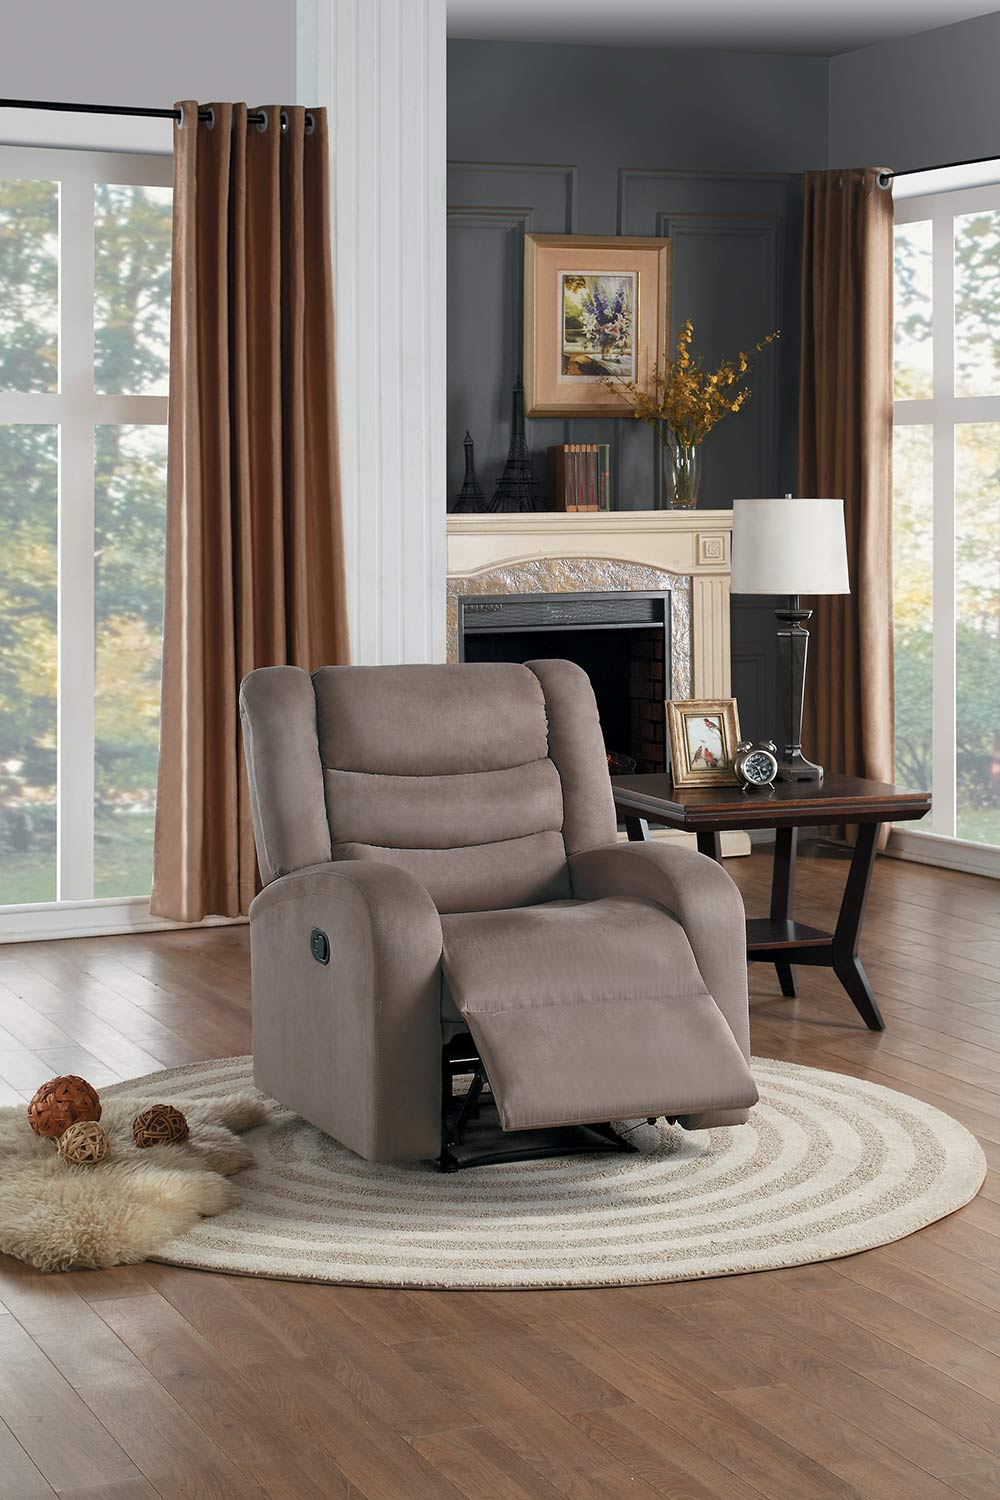 Homelegance Earl Reclining Chair - Brown Fabric